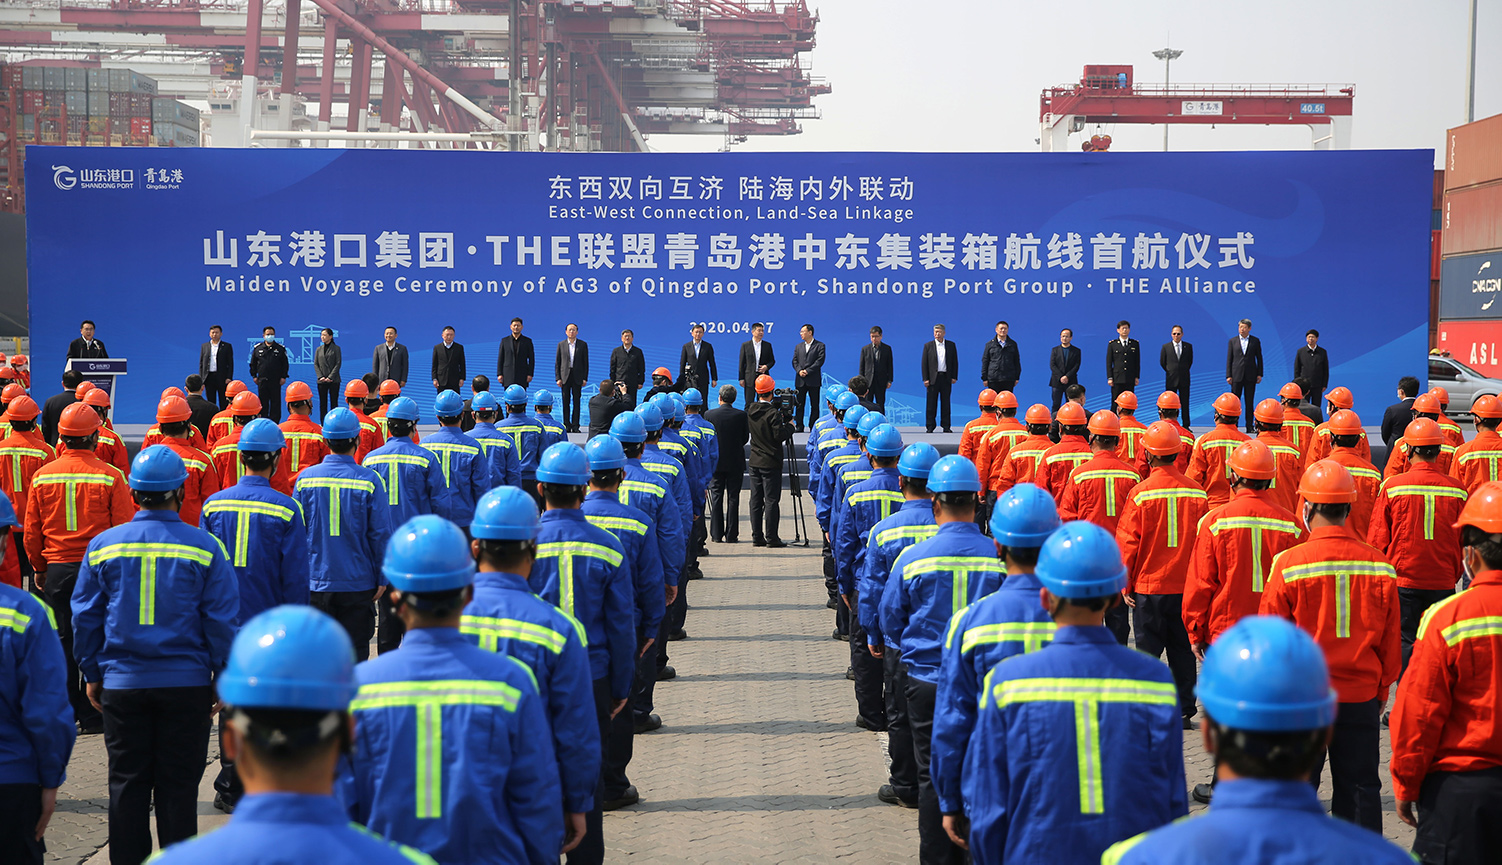 The launch of a new shipping-container alliance running between the Middle East and China in Qingdao on April 7, 2020. Costfoto/Barcroft Media via Getty Images.